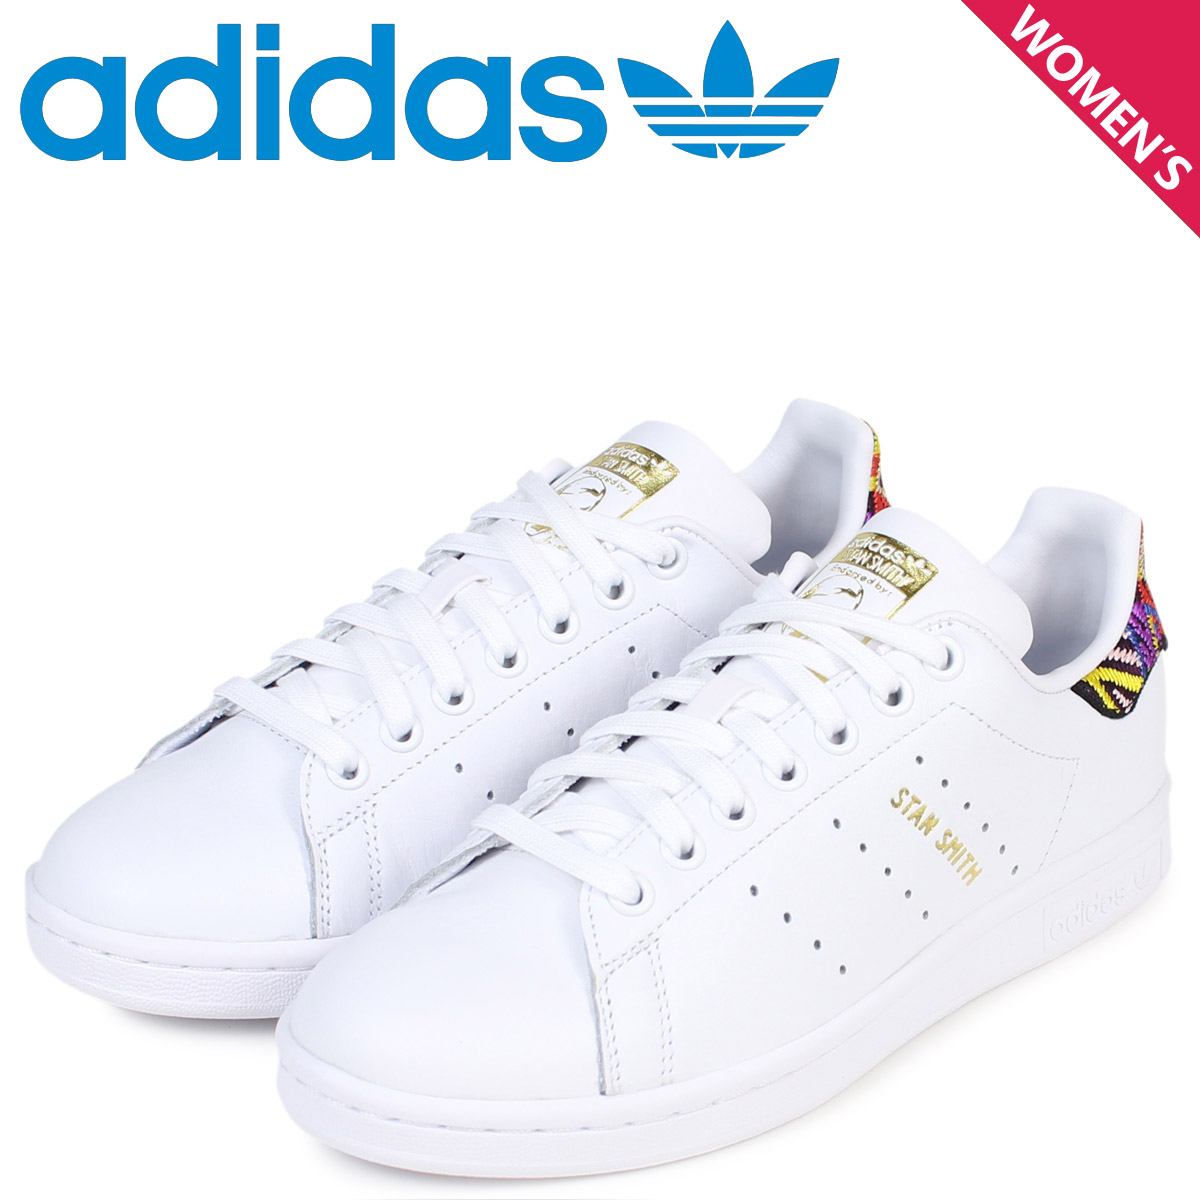 adidas stans smith cq2814